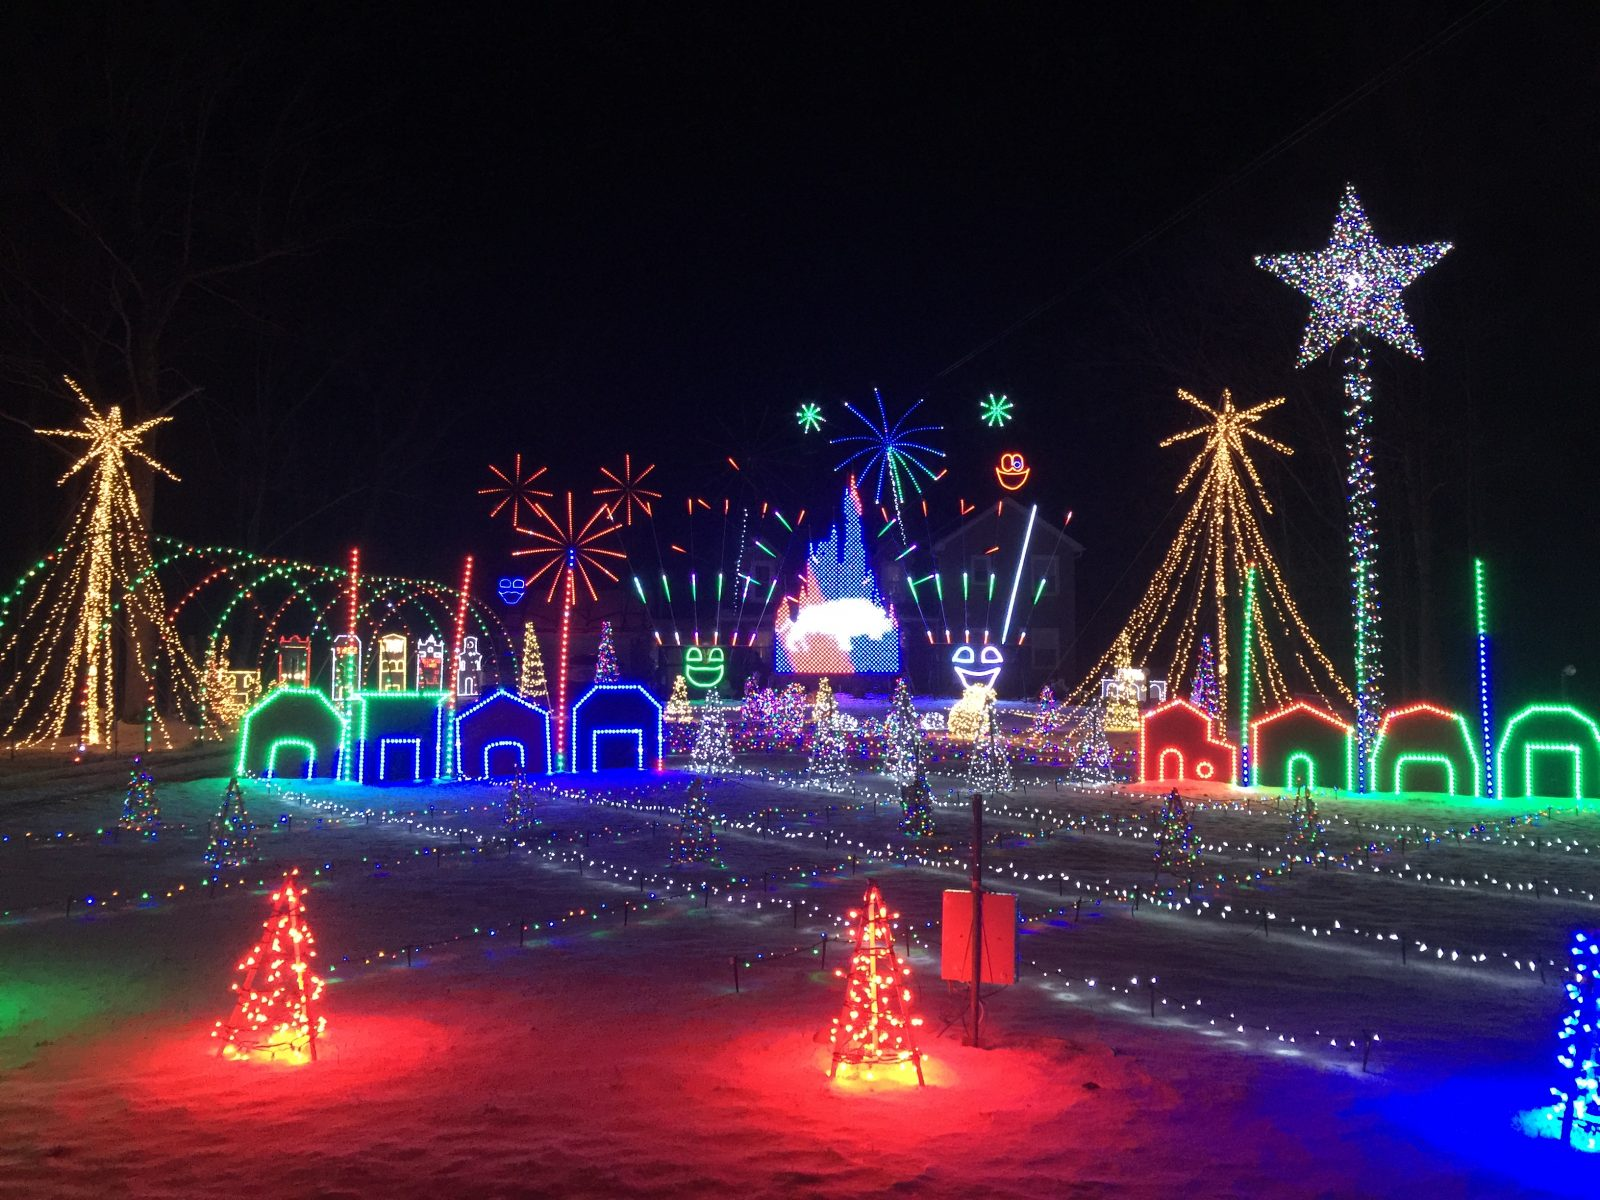 This holiday light display won a Lake View family $50,000 from the ABC reality show 'Great Christmas Light Fight.' (Courtesy of the Field family)